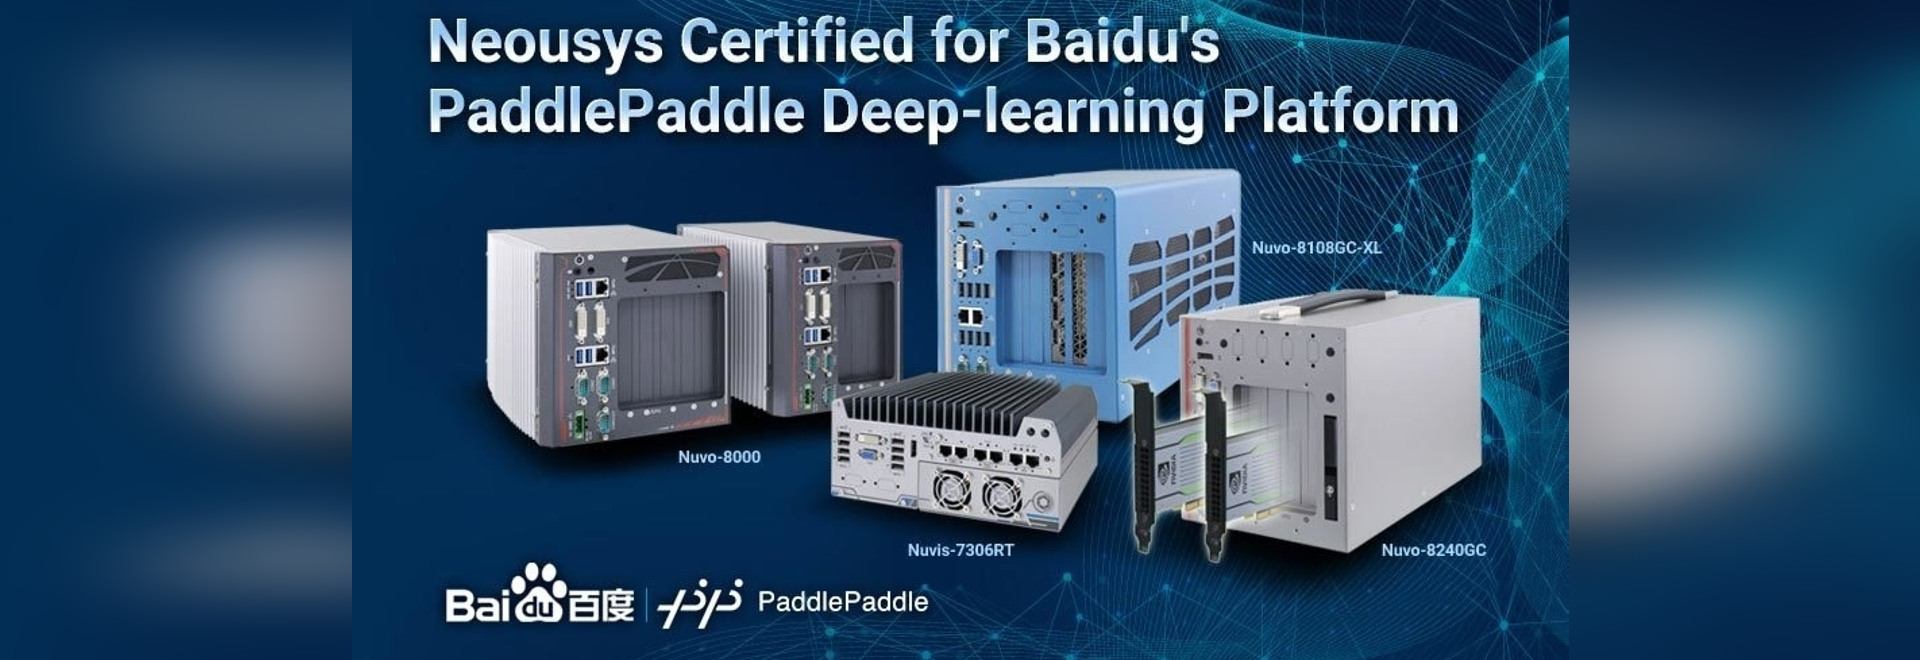 Neousys Embedded Computers Certified for Baidu's PaddleX/ PaddlePaddle Deep-learning Platform